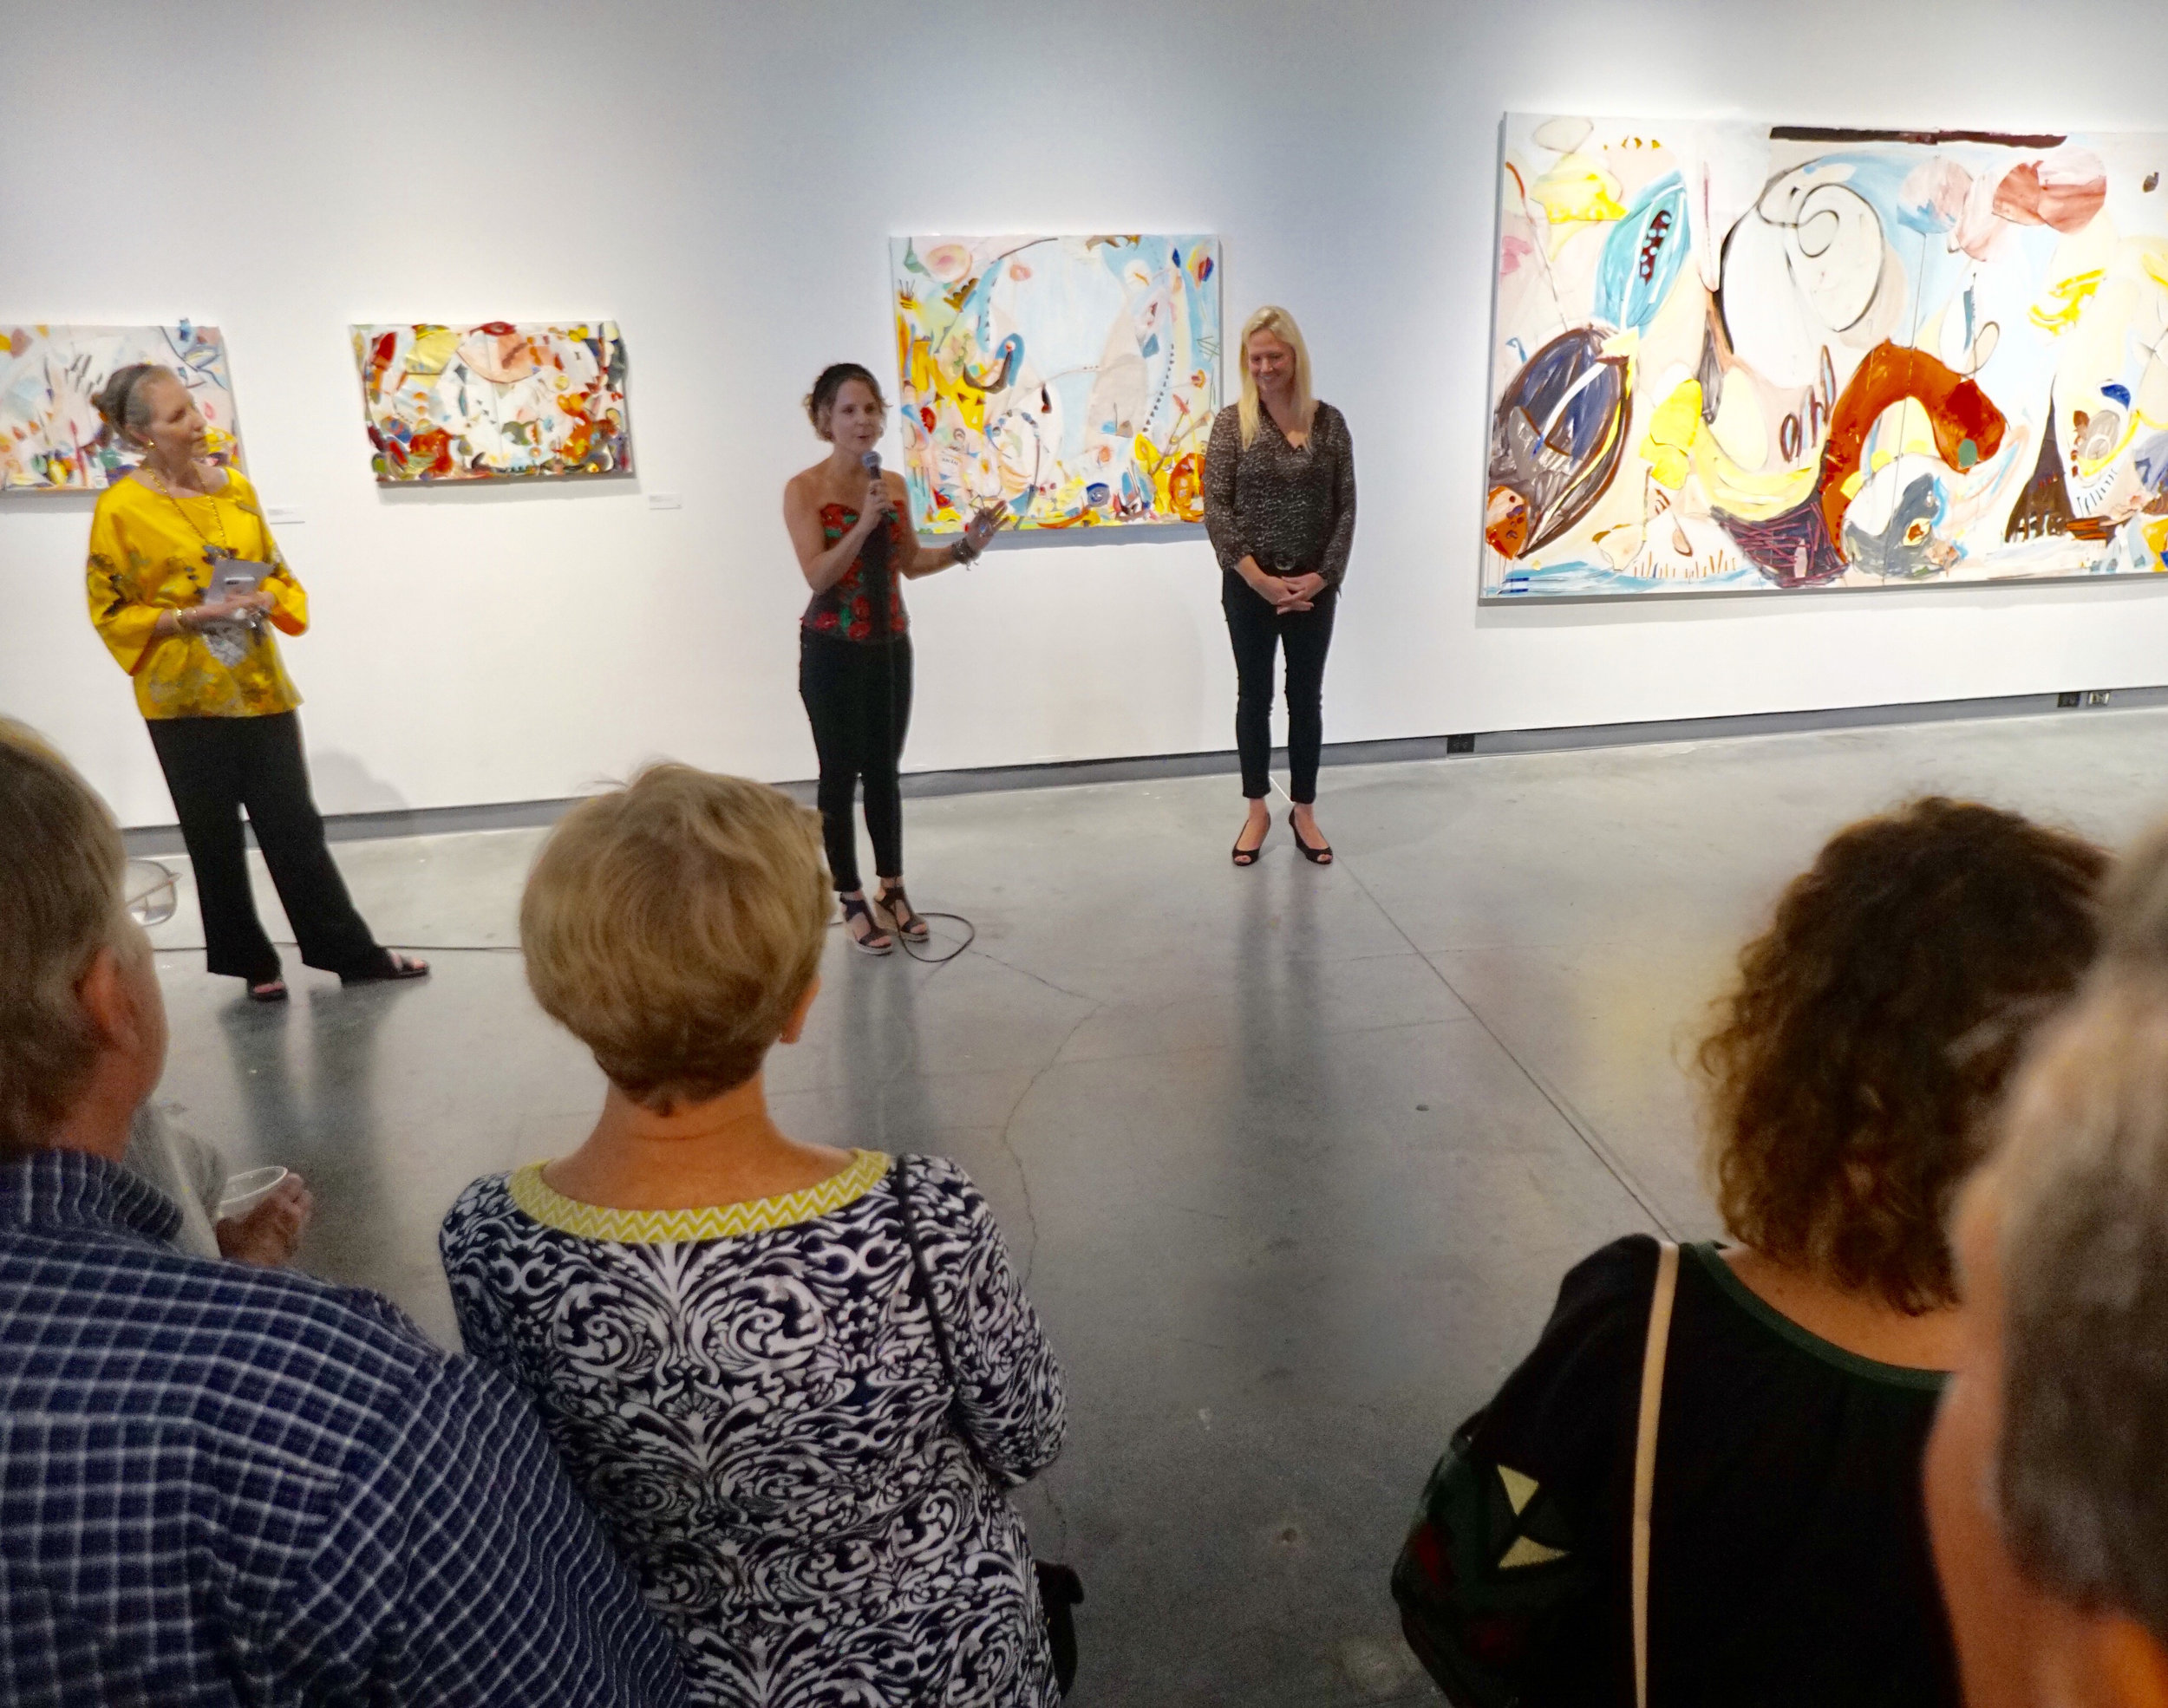 Opening Reception: Wednesday, August 16, Photo Credit: Dan Brody